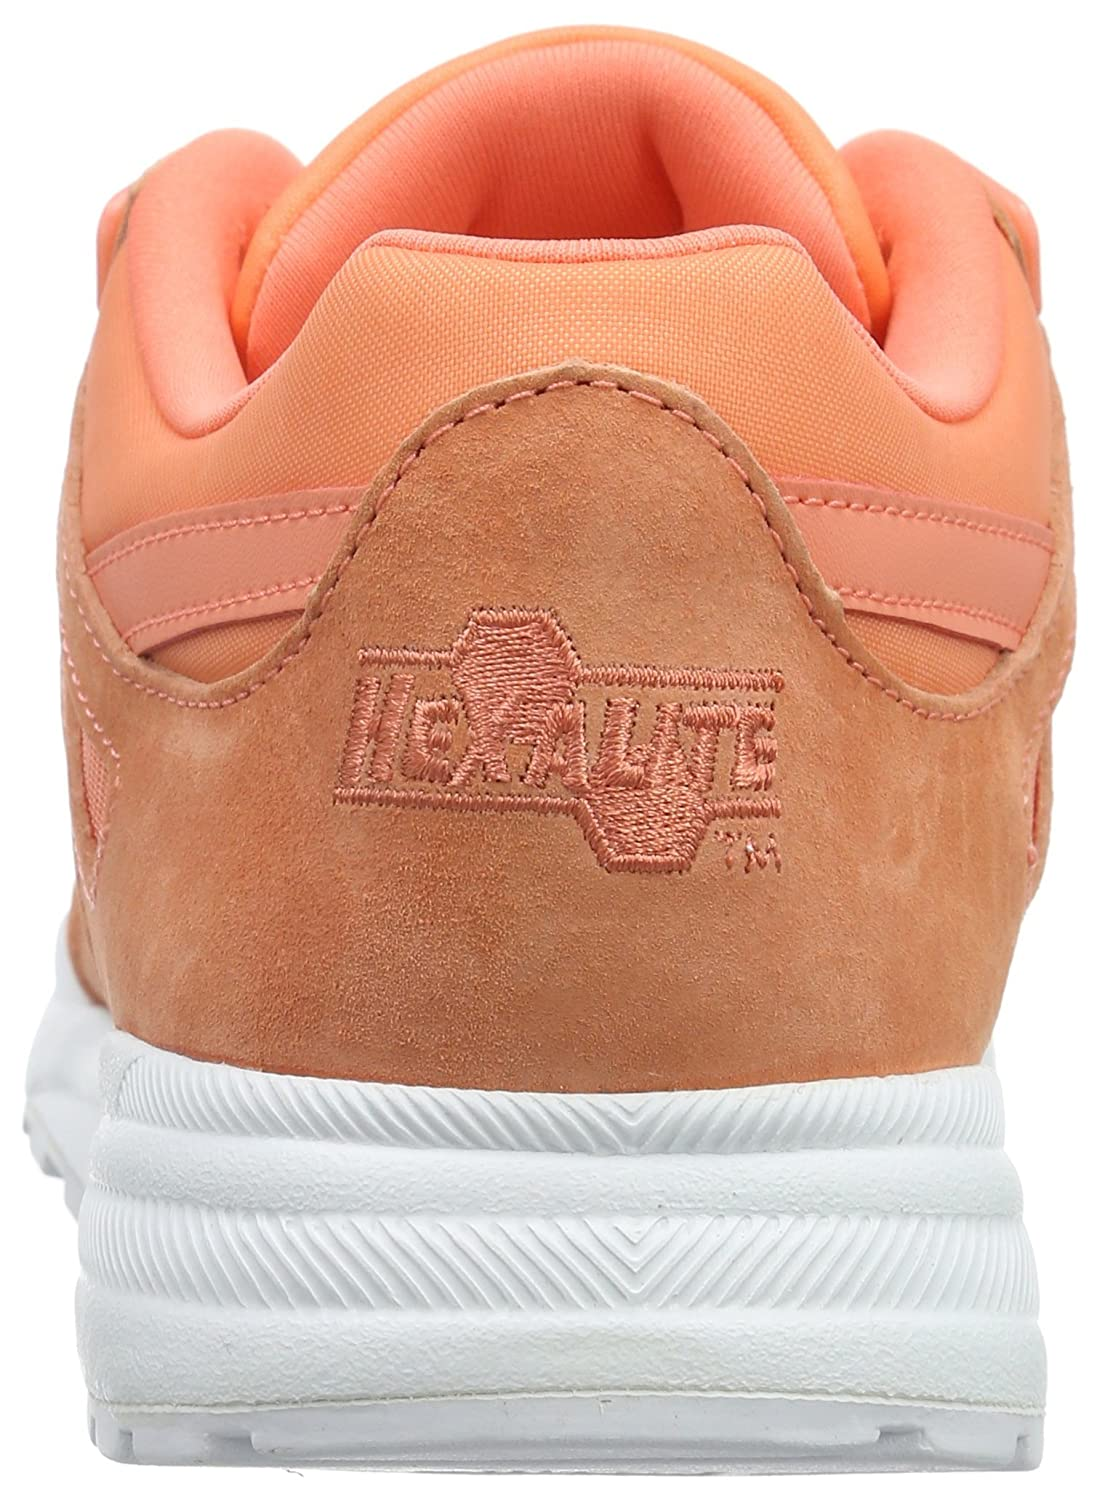 Reebok Summer Damen Ventilator Summer Reebok Brights Sneakers Orange (Coral/Weiß) 18e9b4